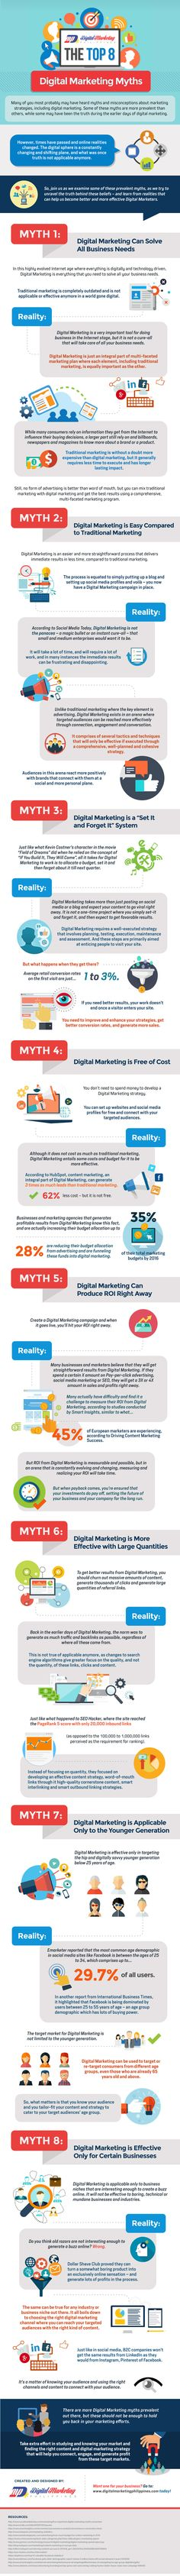 8 #Digital #Marketing Myths You Should Ignore #Infographic